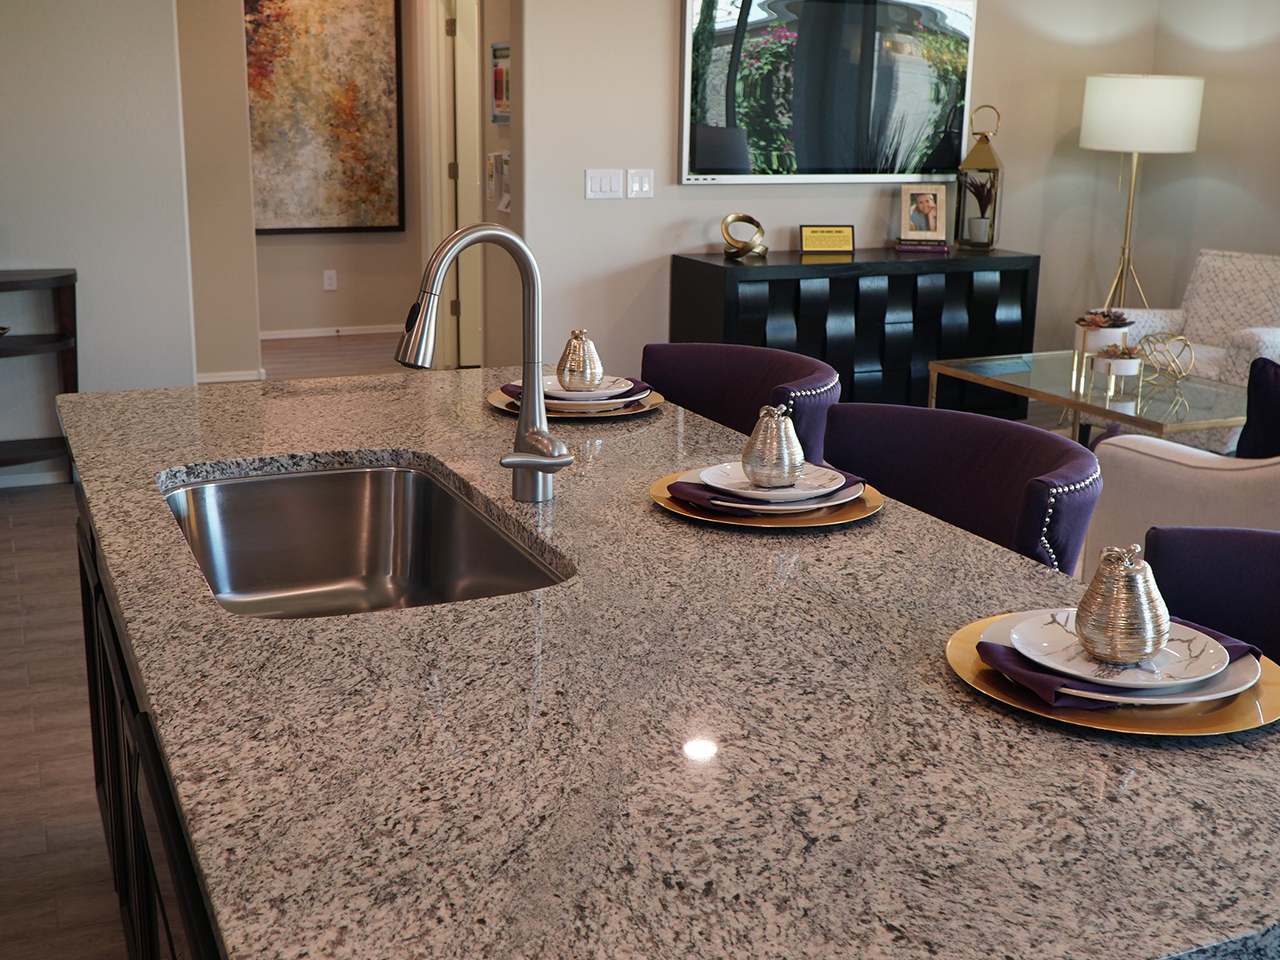 Exceptionnel Get Free High Quality HD Wallpapers Laminate Countertops Mesa Az